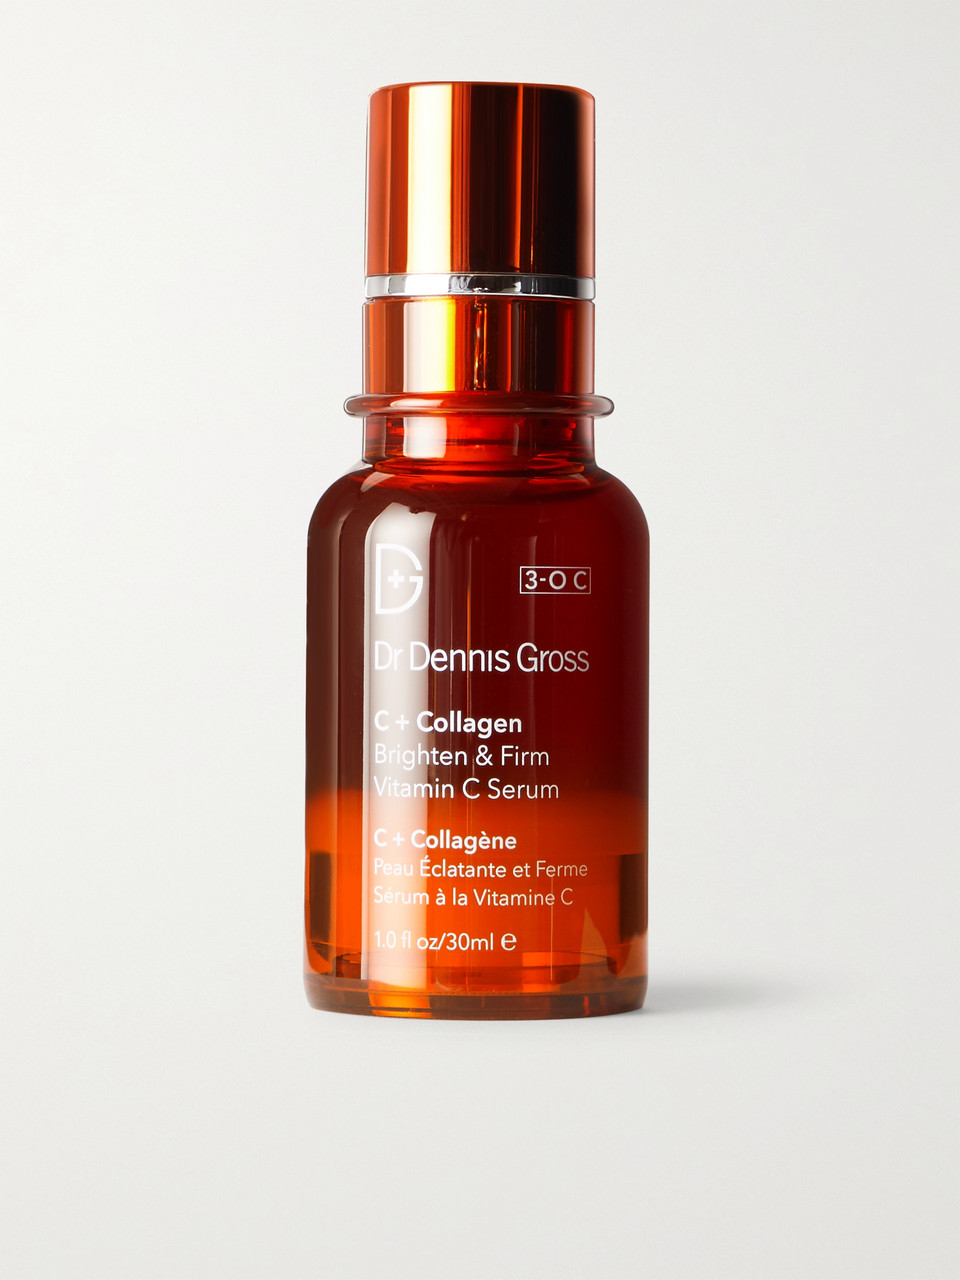 Dr. Dennis Gross Skincare C+ Collagen Brighten and Firm Serum, 30ml